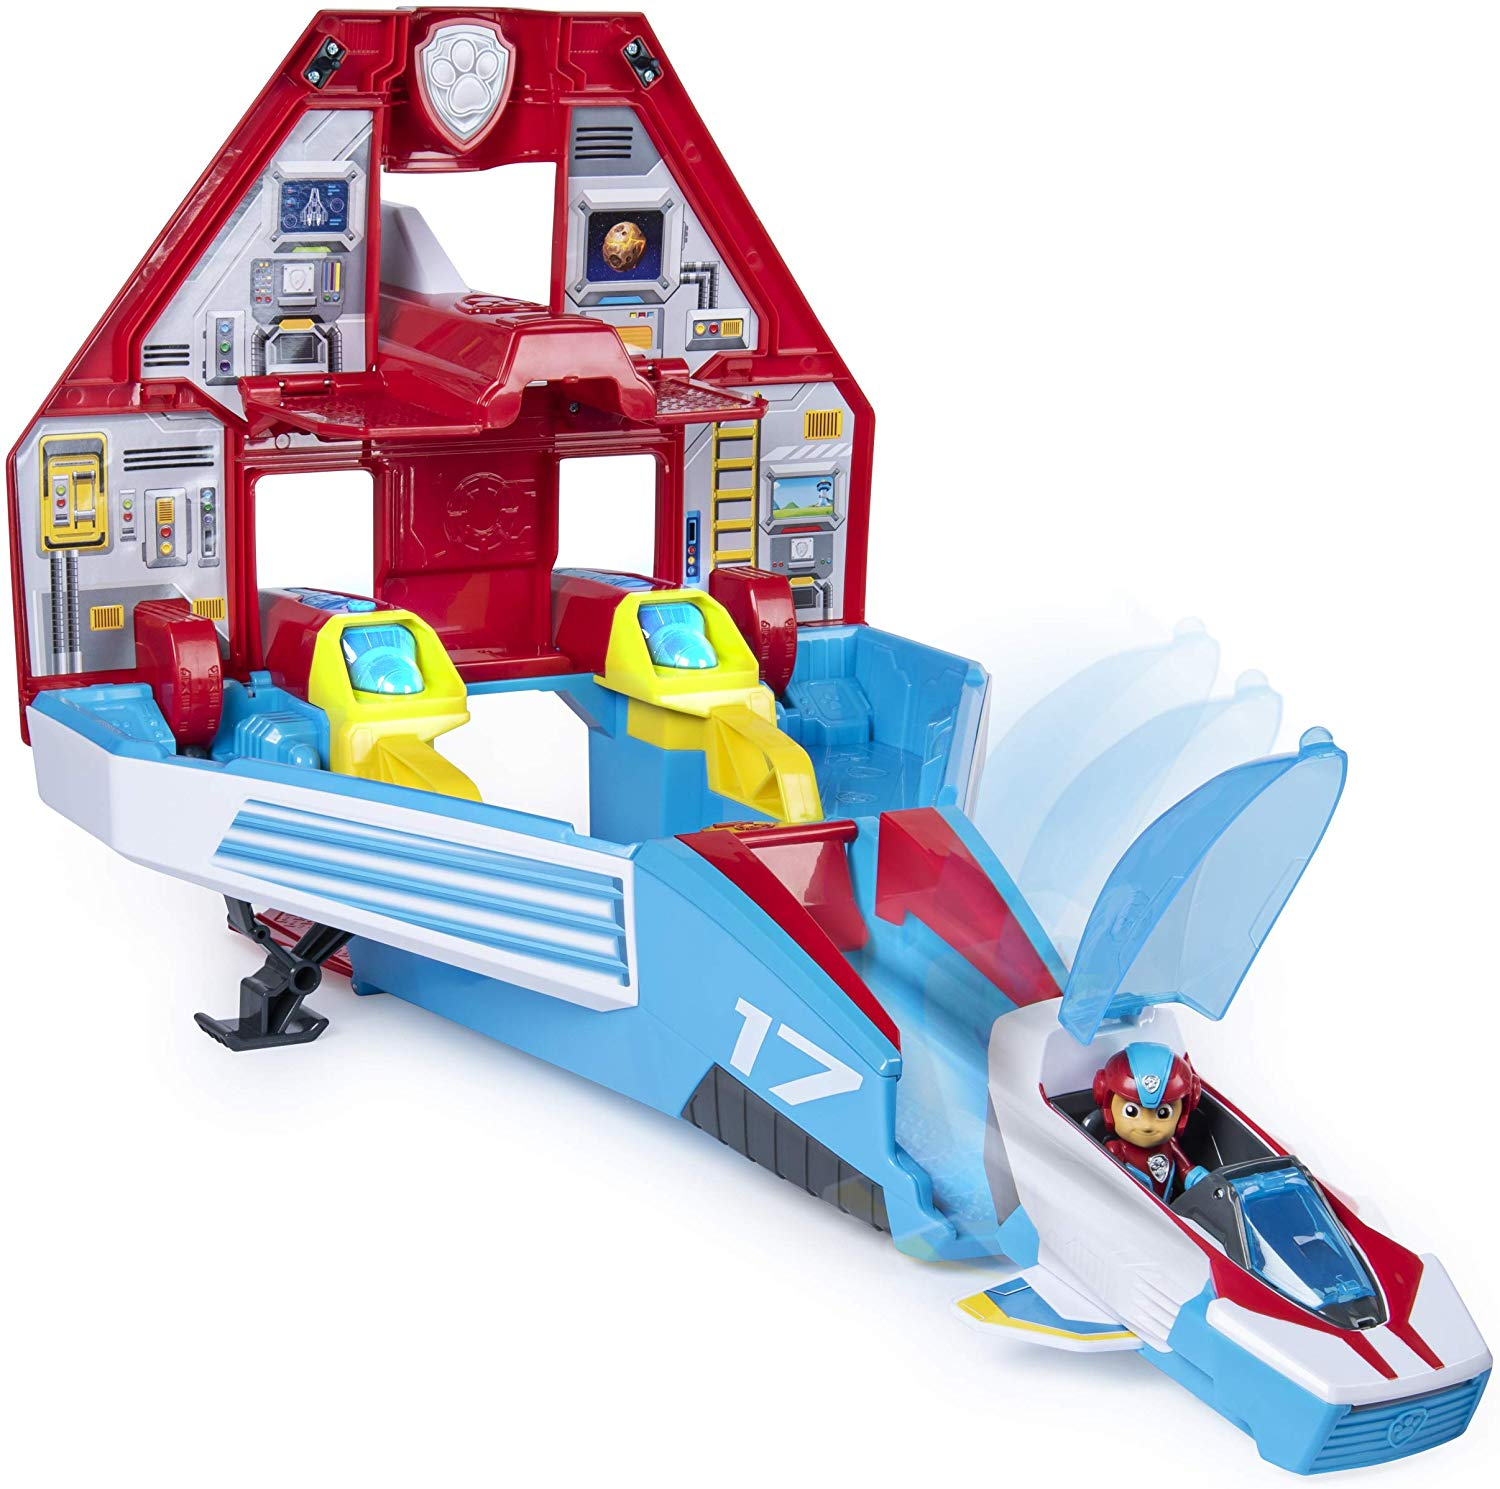 Paw Patrol Jet Command Center